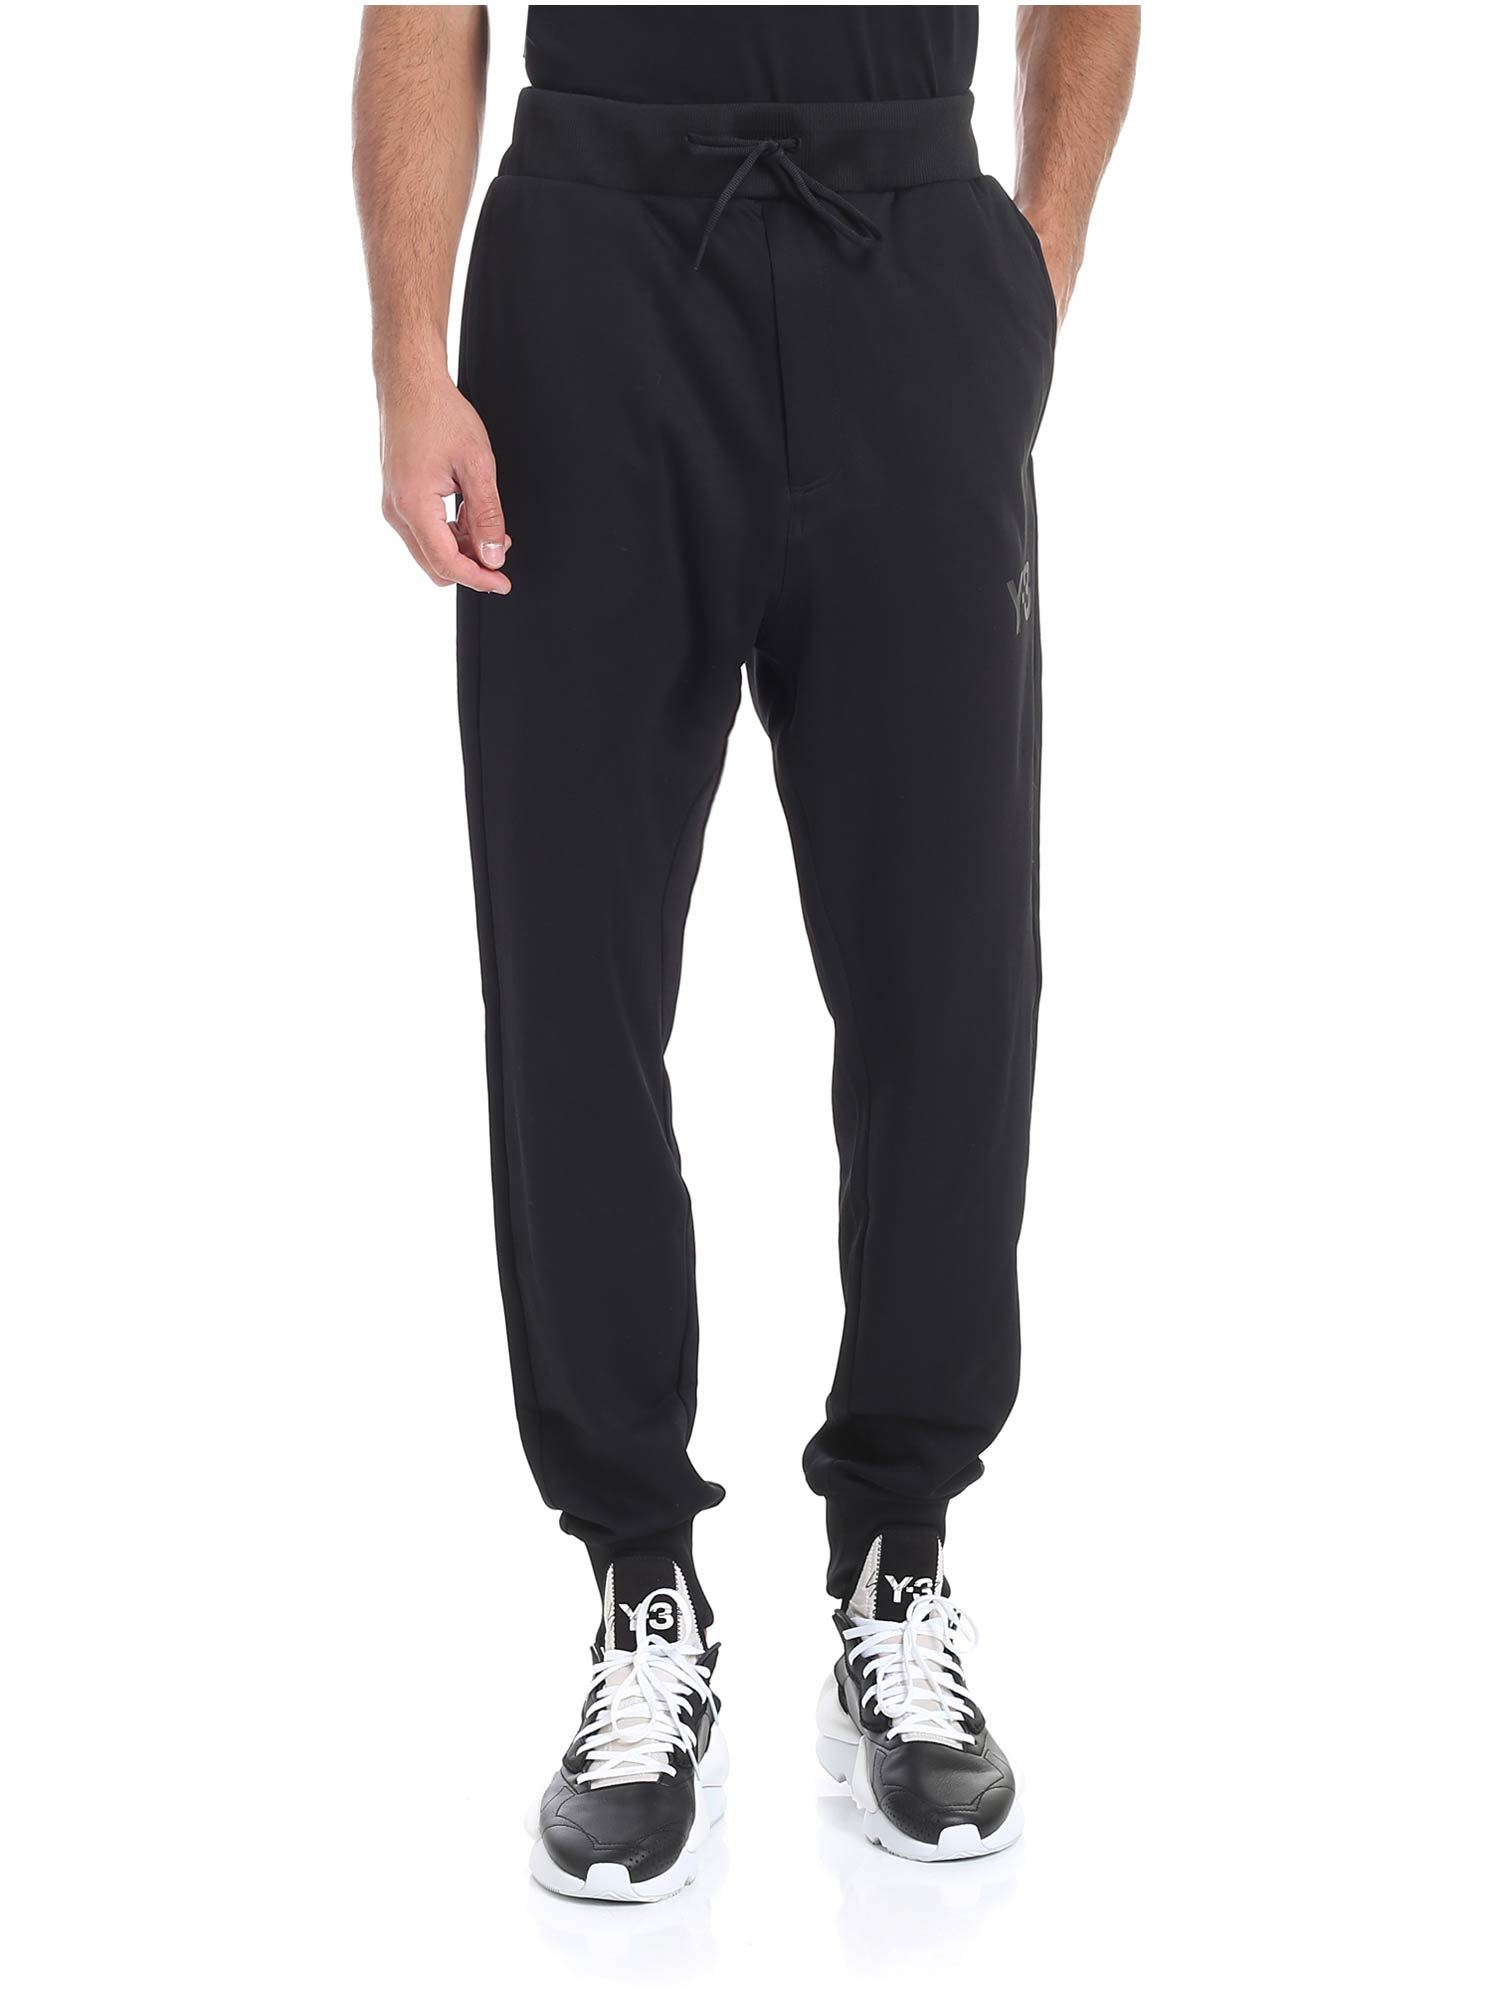 19f75c87ce517 Y-3 Y3 Tapered Track Pants In Nero